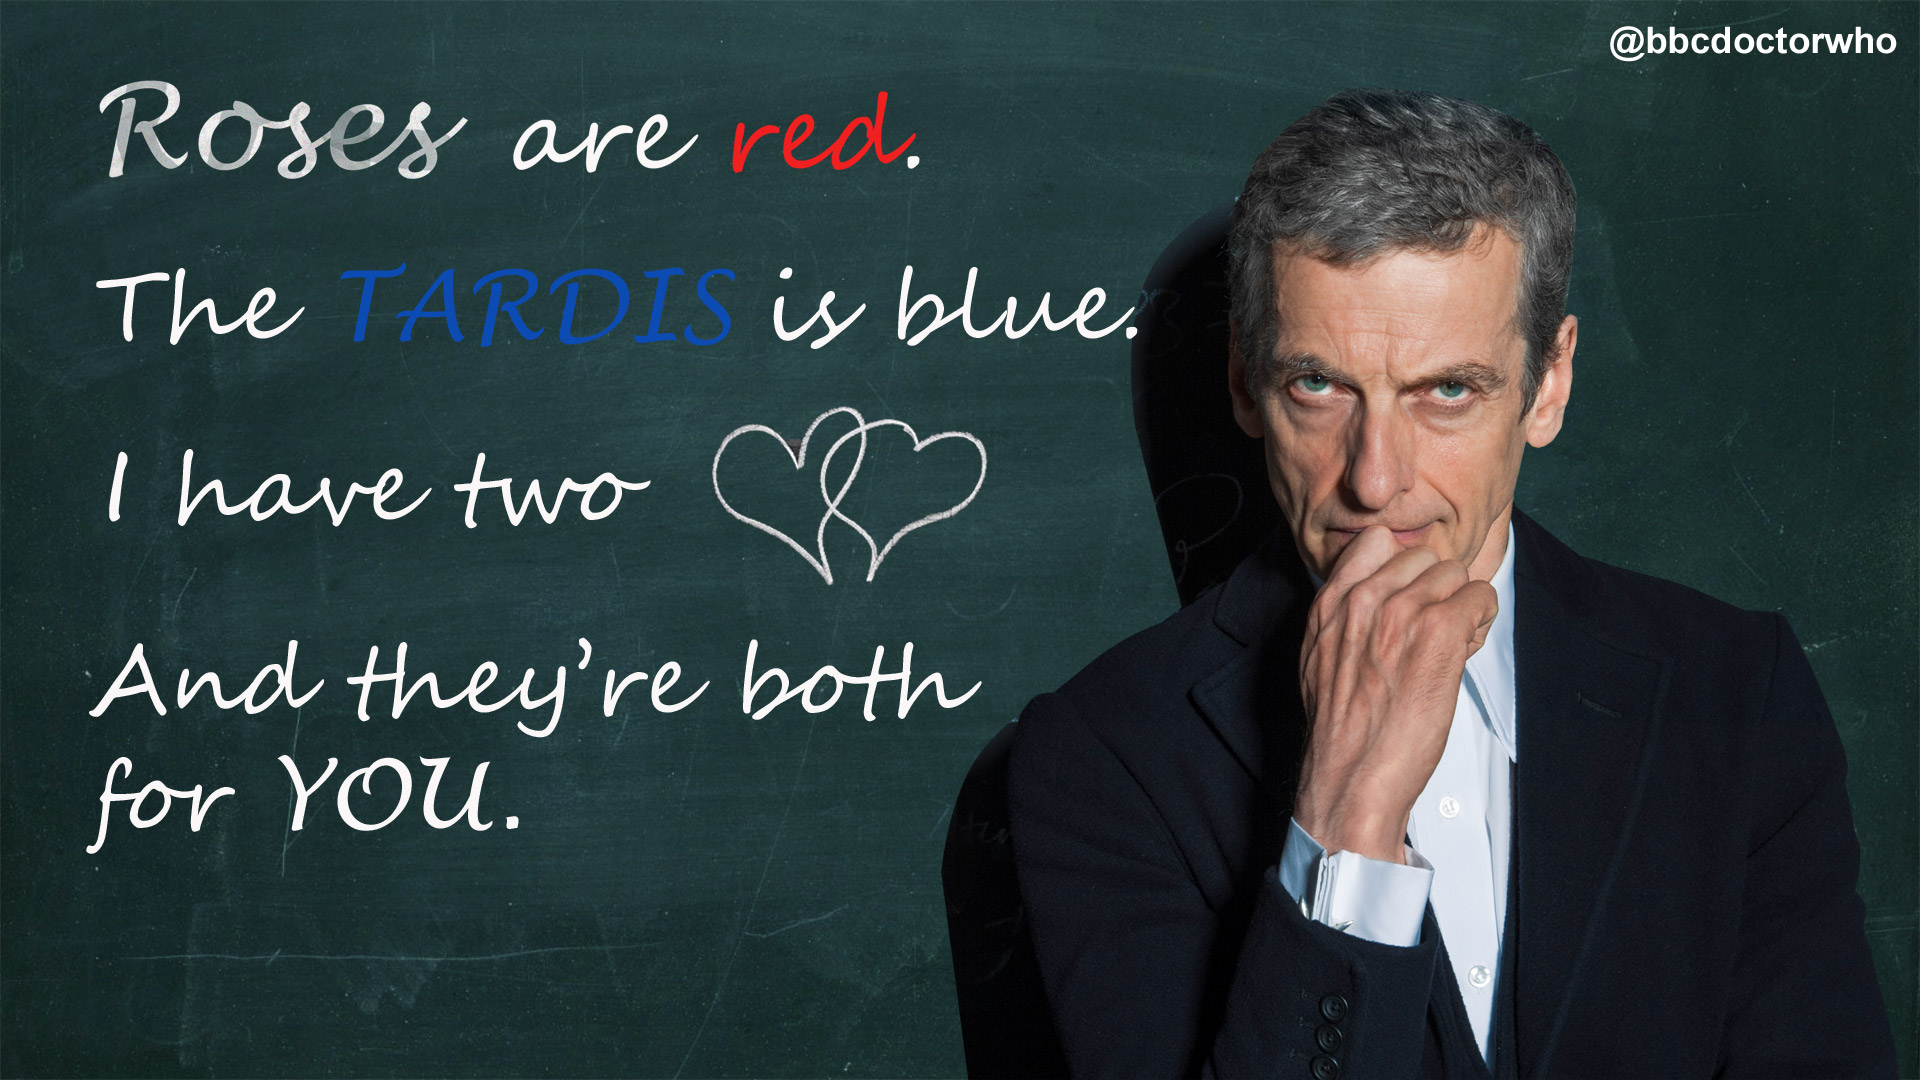 BBC Latest News   Doctor Who   Valentines E cards and Wallpapers 1920x1080